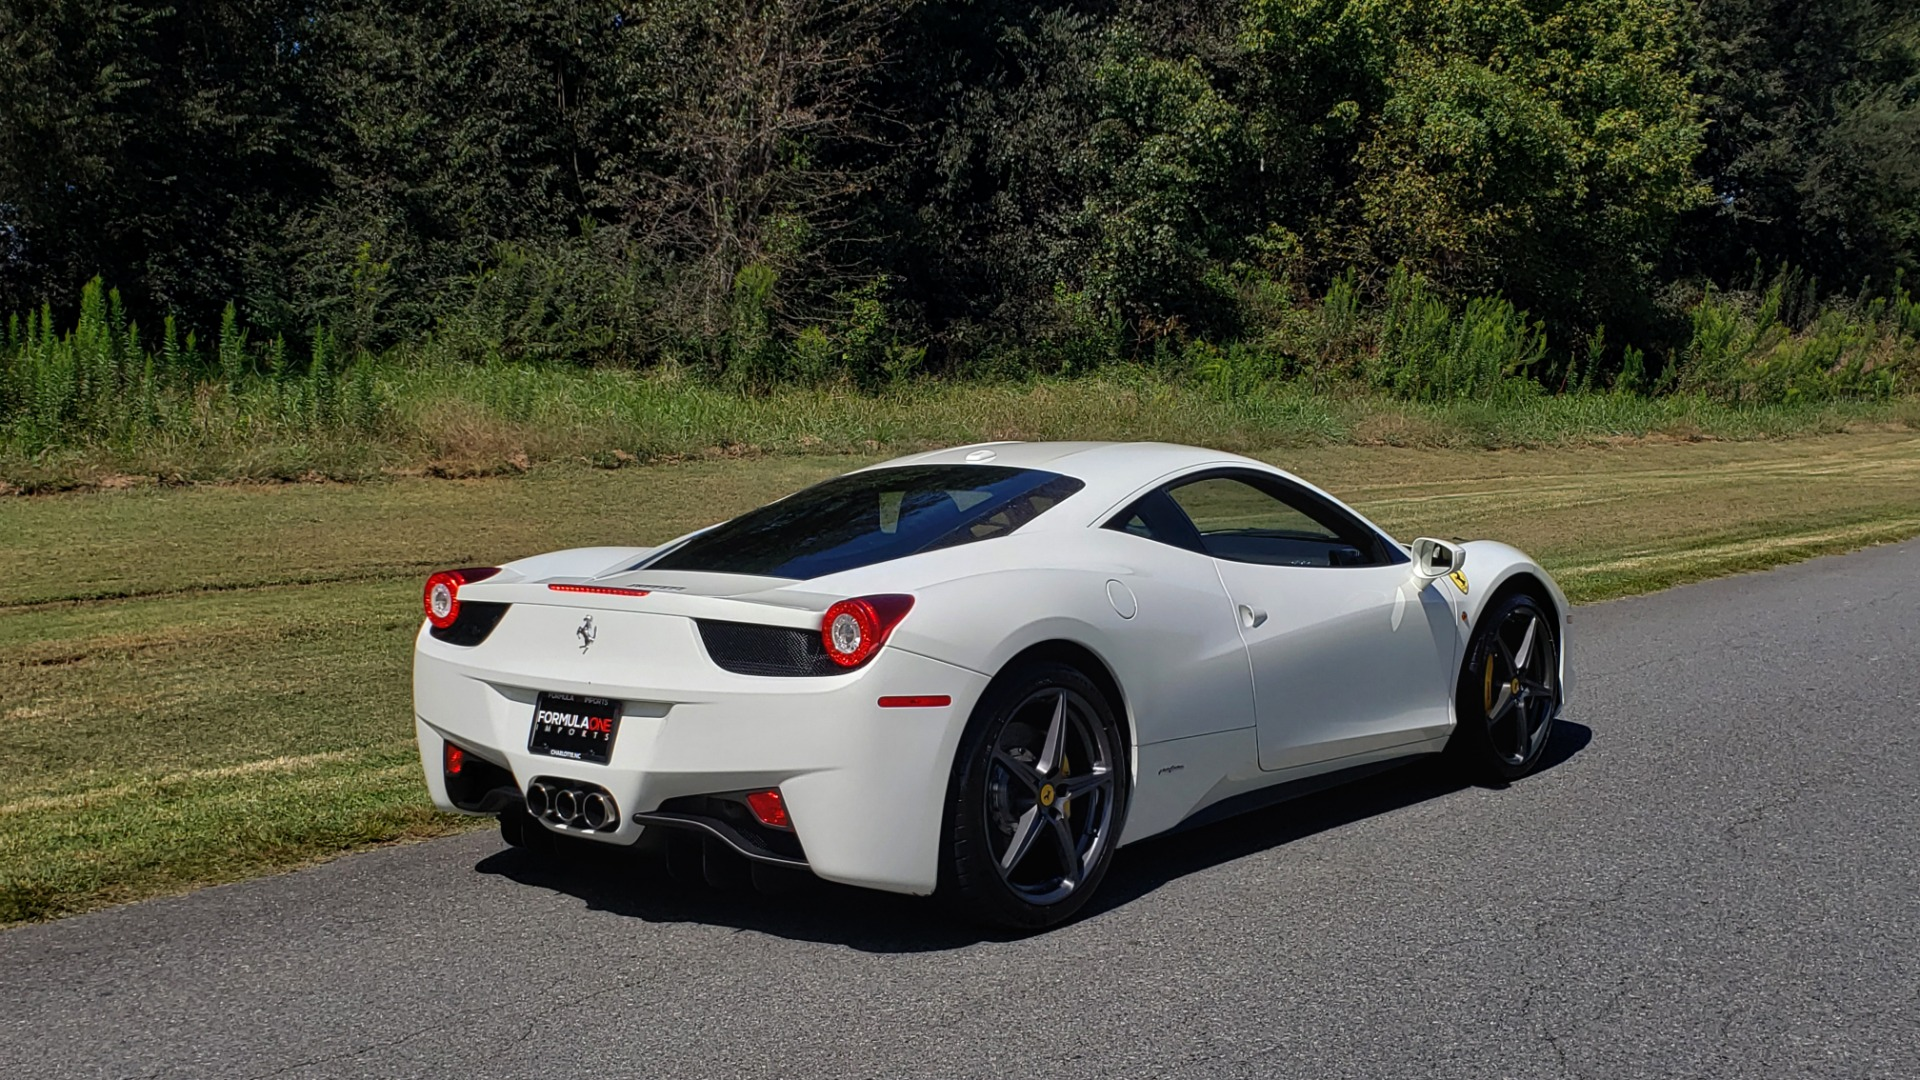 Used 2012 Ferrari 458 ITALIA COUPE / 4.5L V8 / 7-SPEED AUTO / LOW MILES SUPER CLEAN for sale $169,999 at Formula Imports in Charlotte NC 28227 12